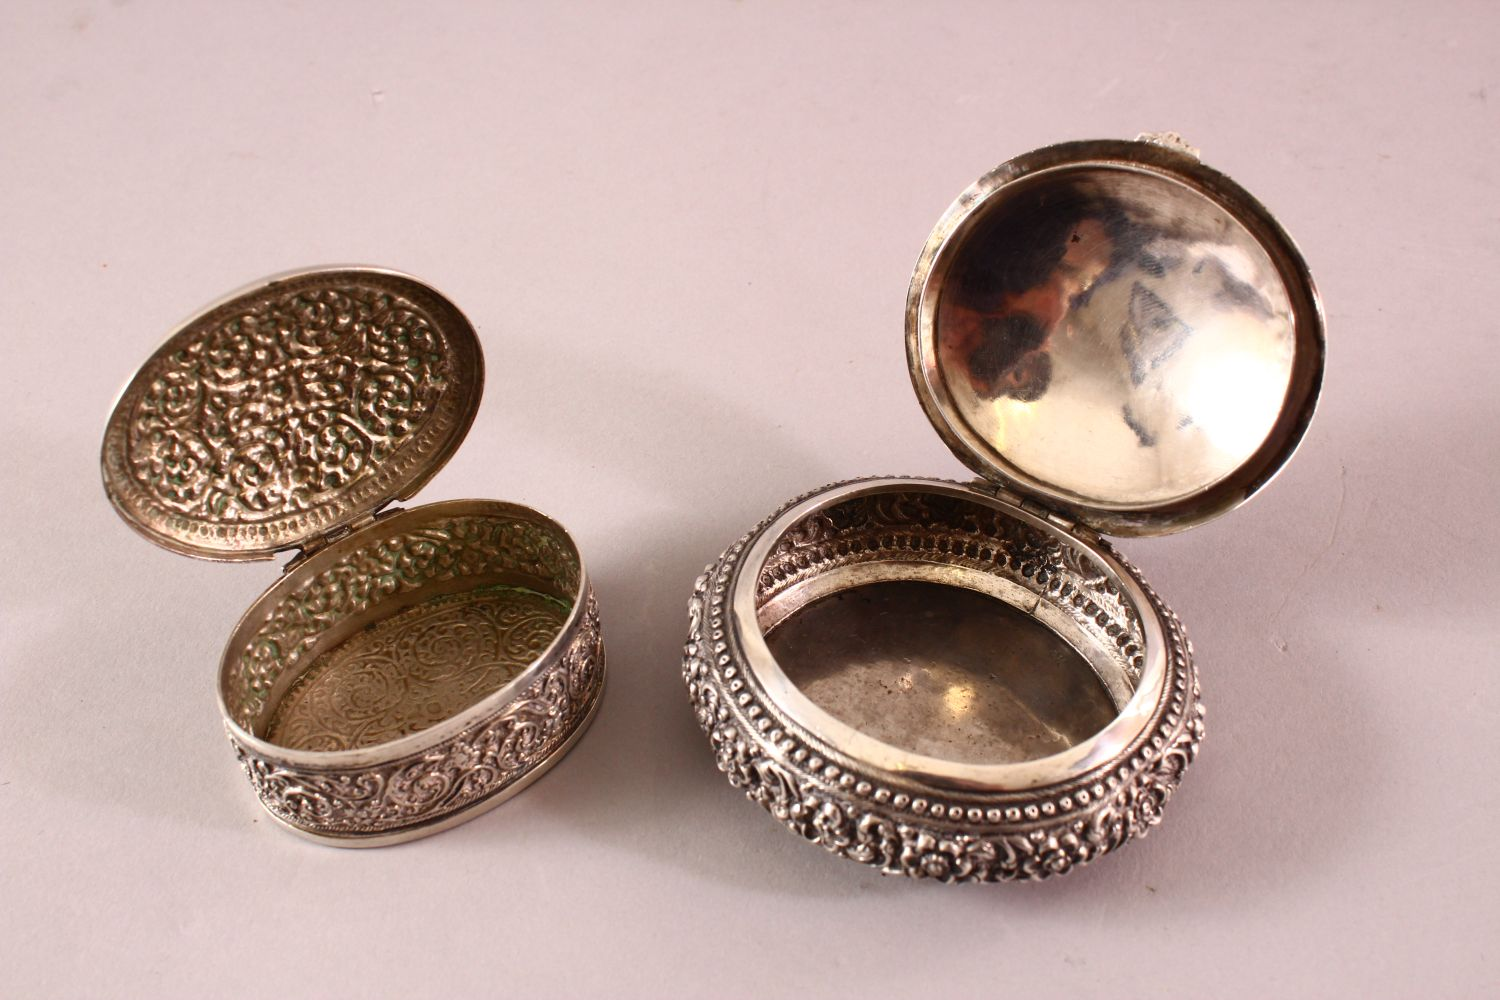 TWO 19TH CENTURY SRI LANKAN SILVER BOXES with filigree decoration, 7.5cm and 5.5cm wide. - Image 2 of 3